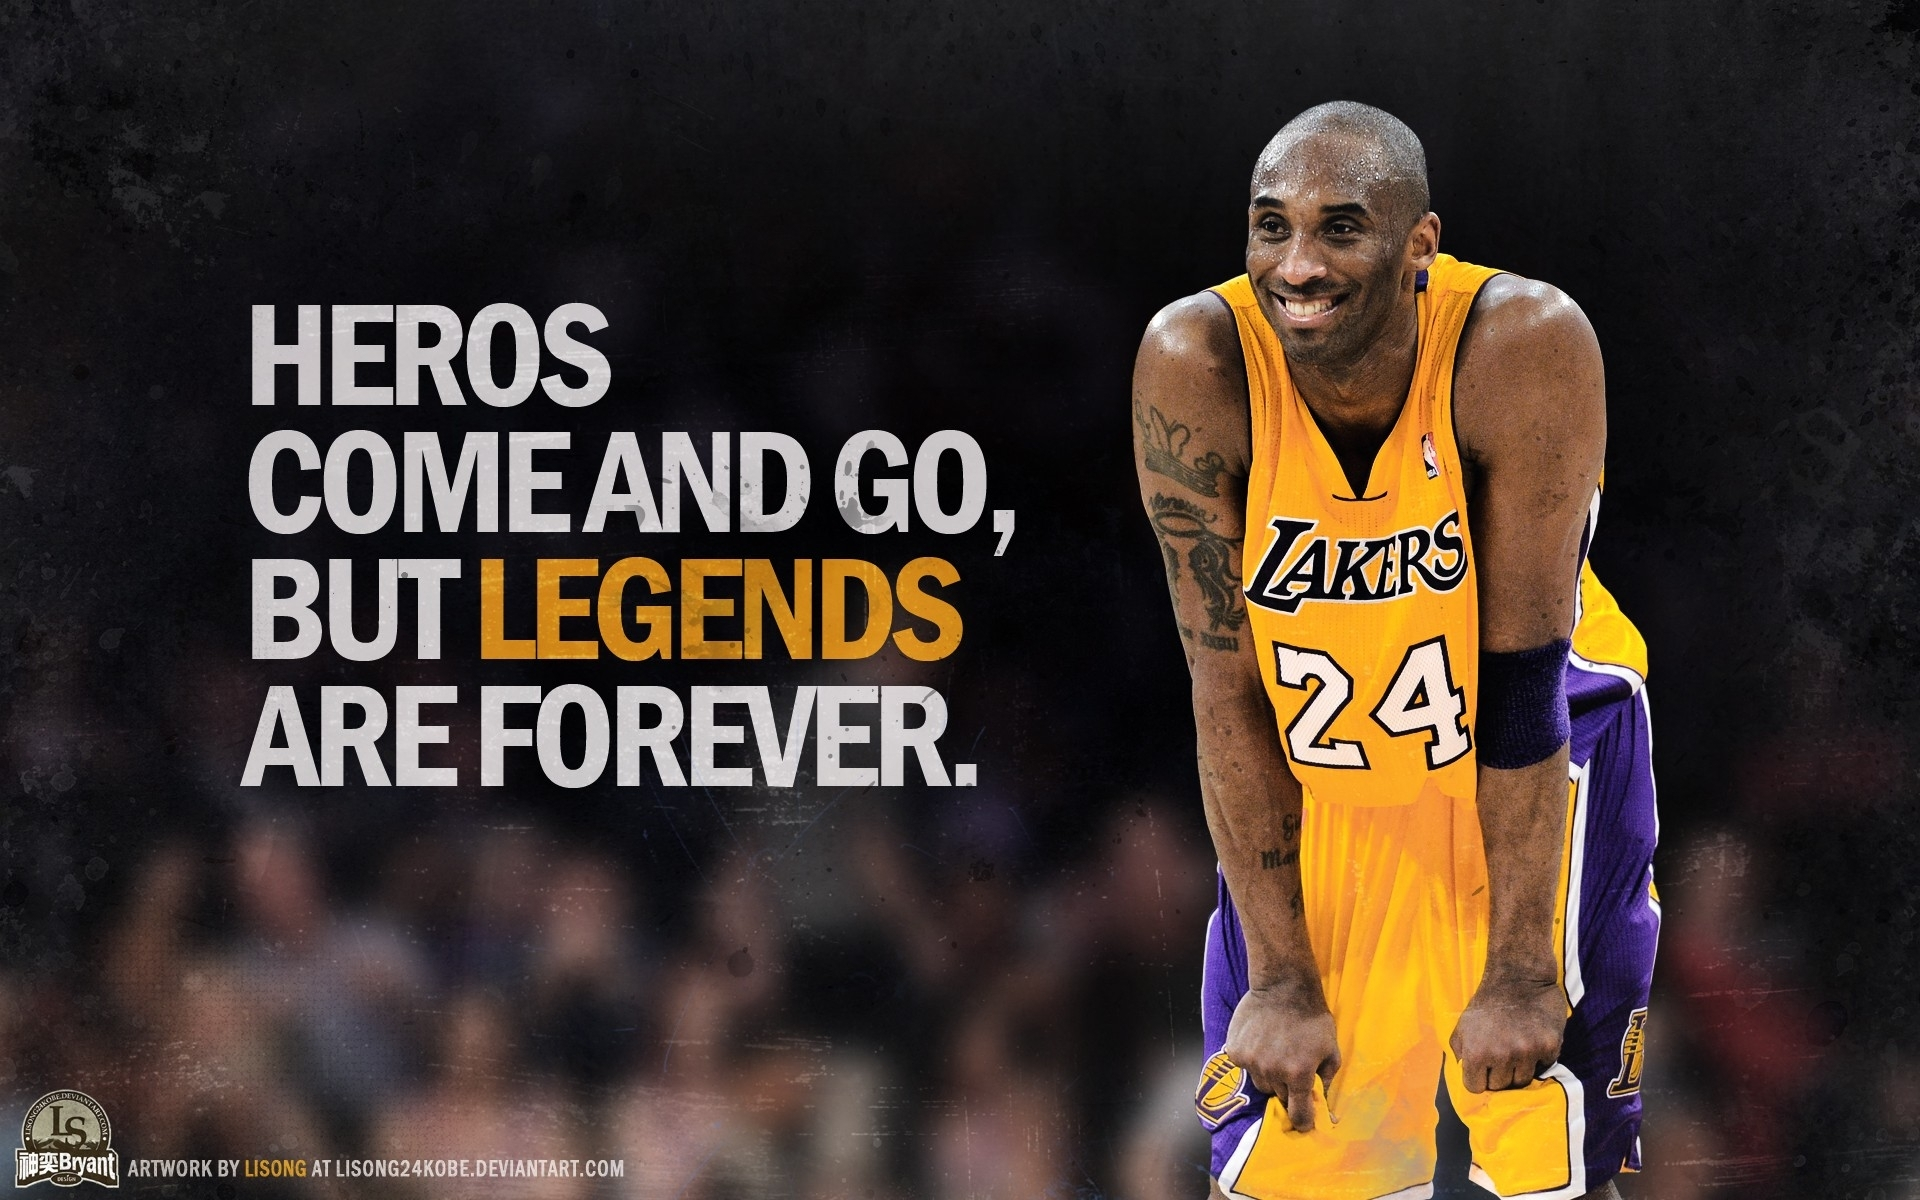 10 Best Kobe Bryant Wallpaper 2015 FULL HD 1920×1080 For PC Background